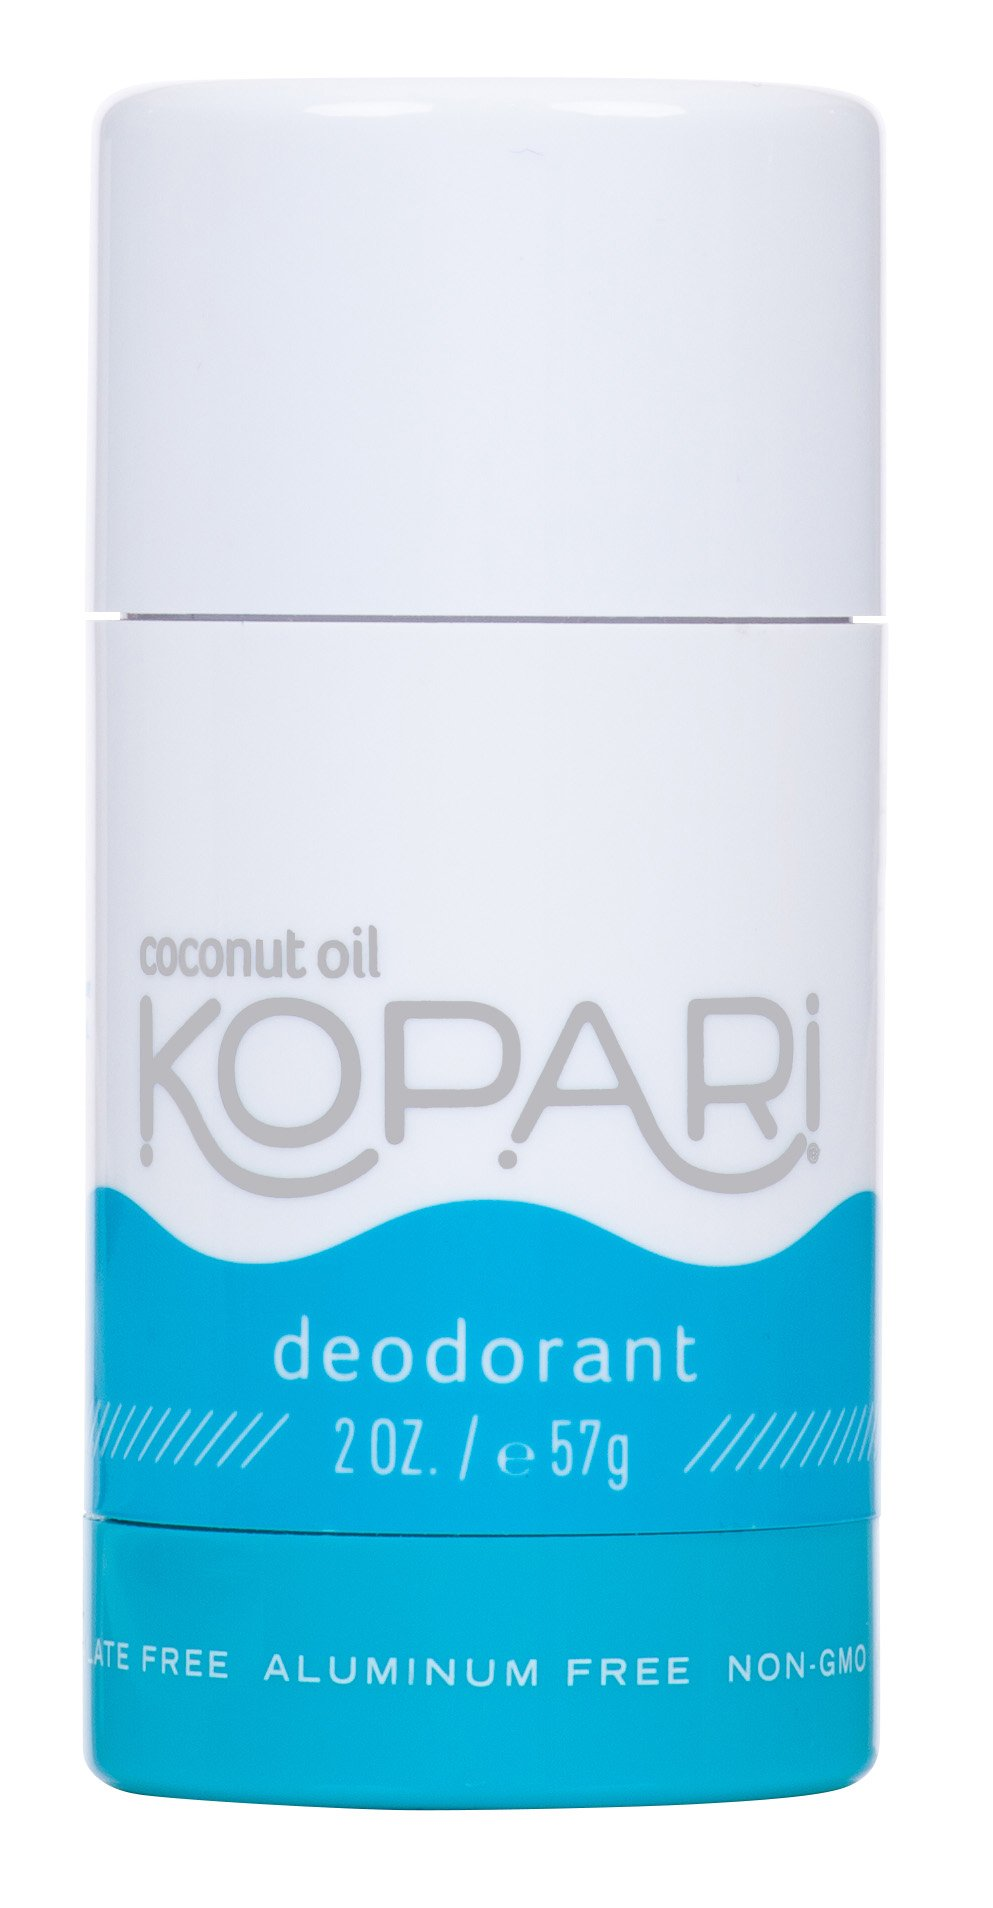 Kopari Aluminum-Free Deodorant | Non-Toxic, Paraben Free, Gluten Free & Cruelty Free Men's and Women's Deodorant | Made with Organic Coconut Oil | 2.0 oz